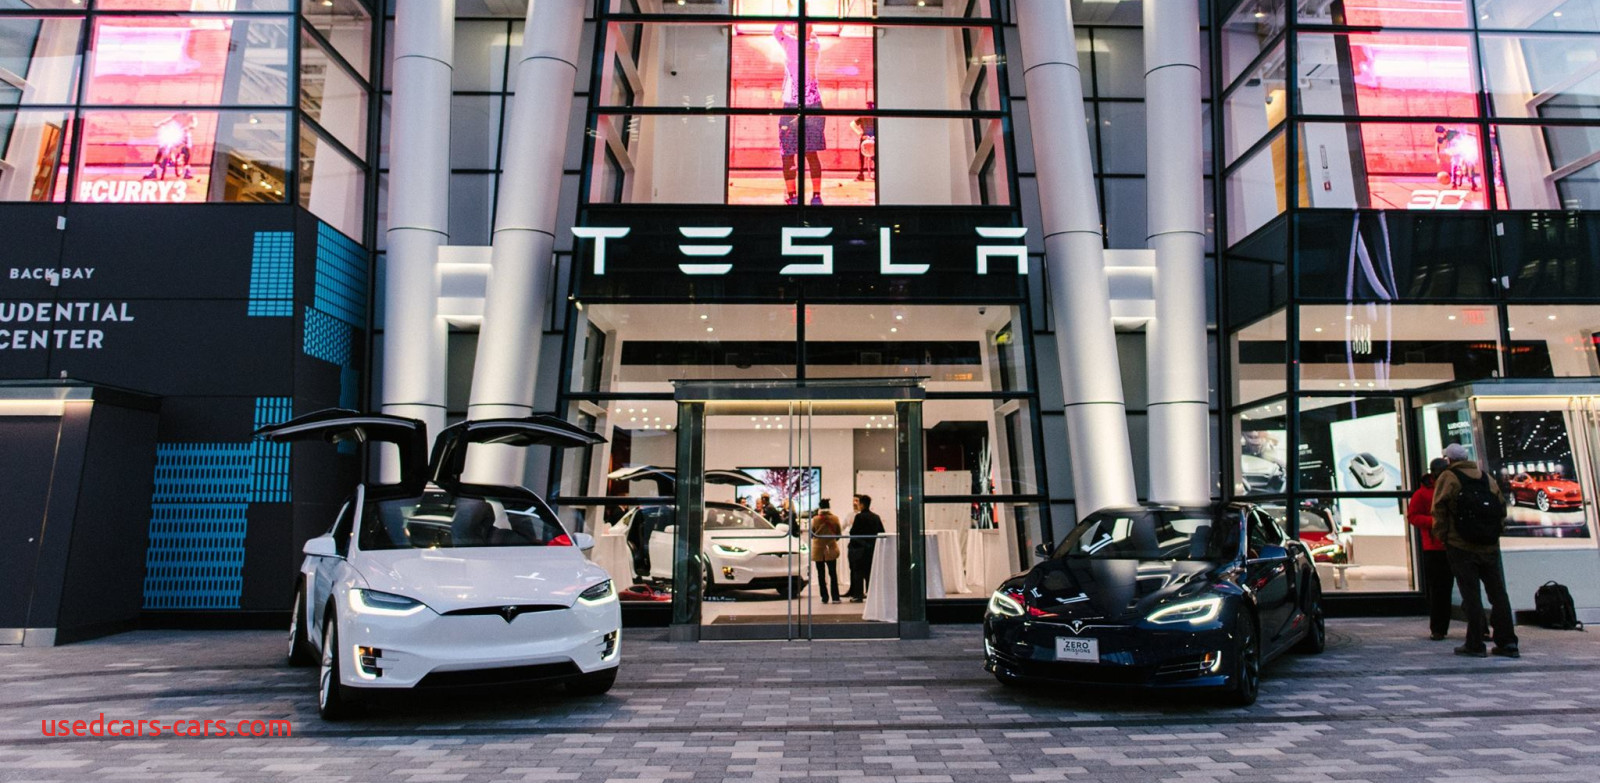 Used Tesla $4000 Best Of Keep Your Eyes On the Used Electric Car Market In 2017